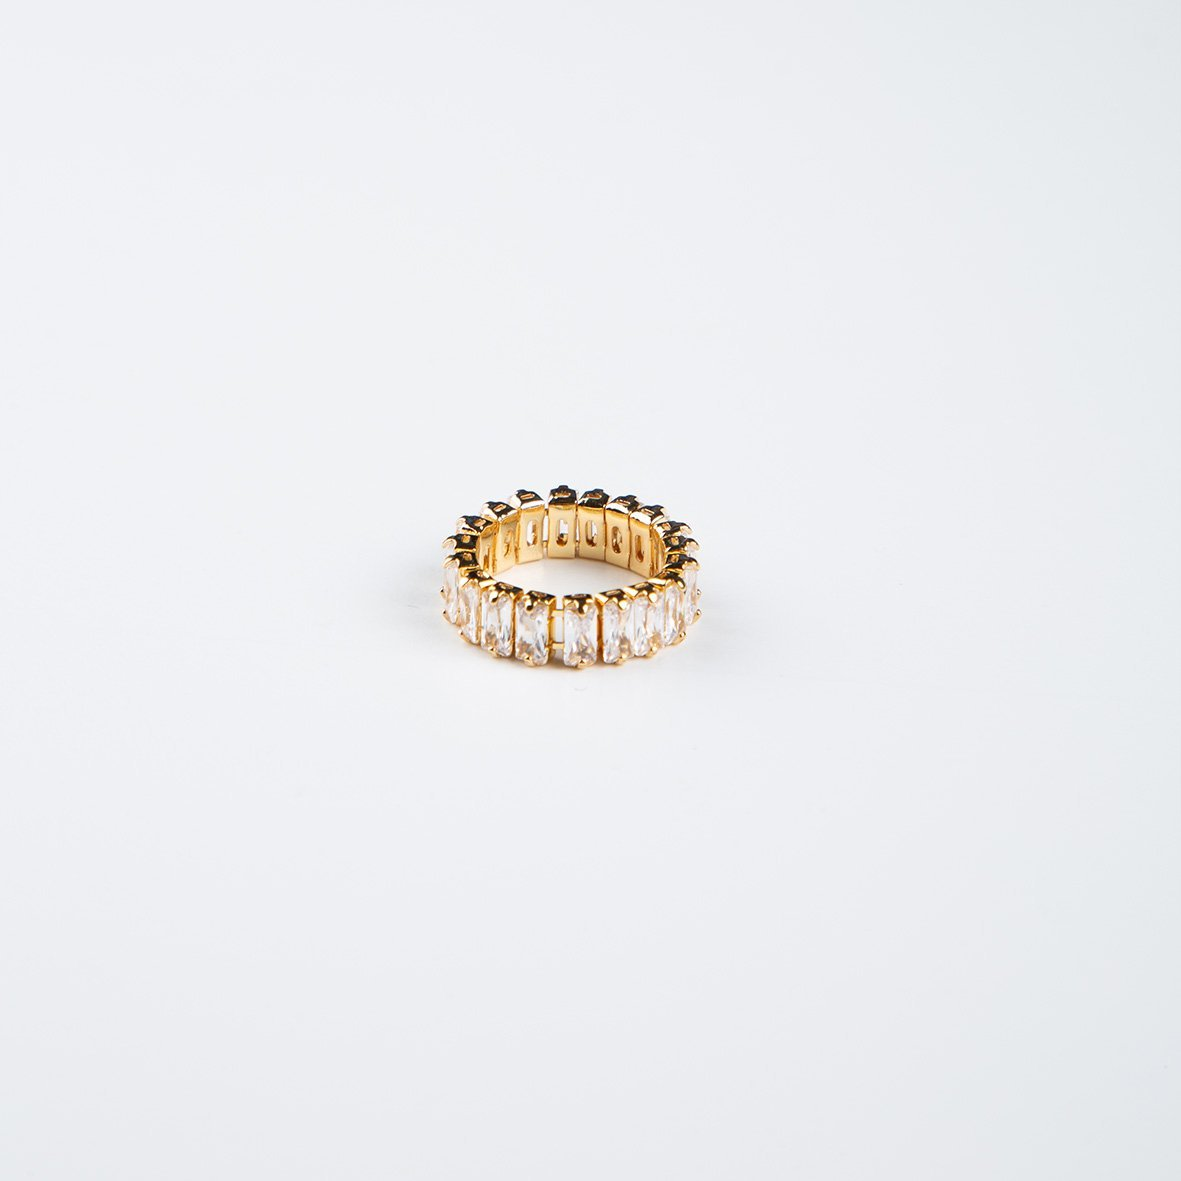 curAtiv proudly gives you Quebec 14k Gold Plated Ring and Cubic Zirconias Ring.